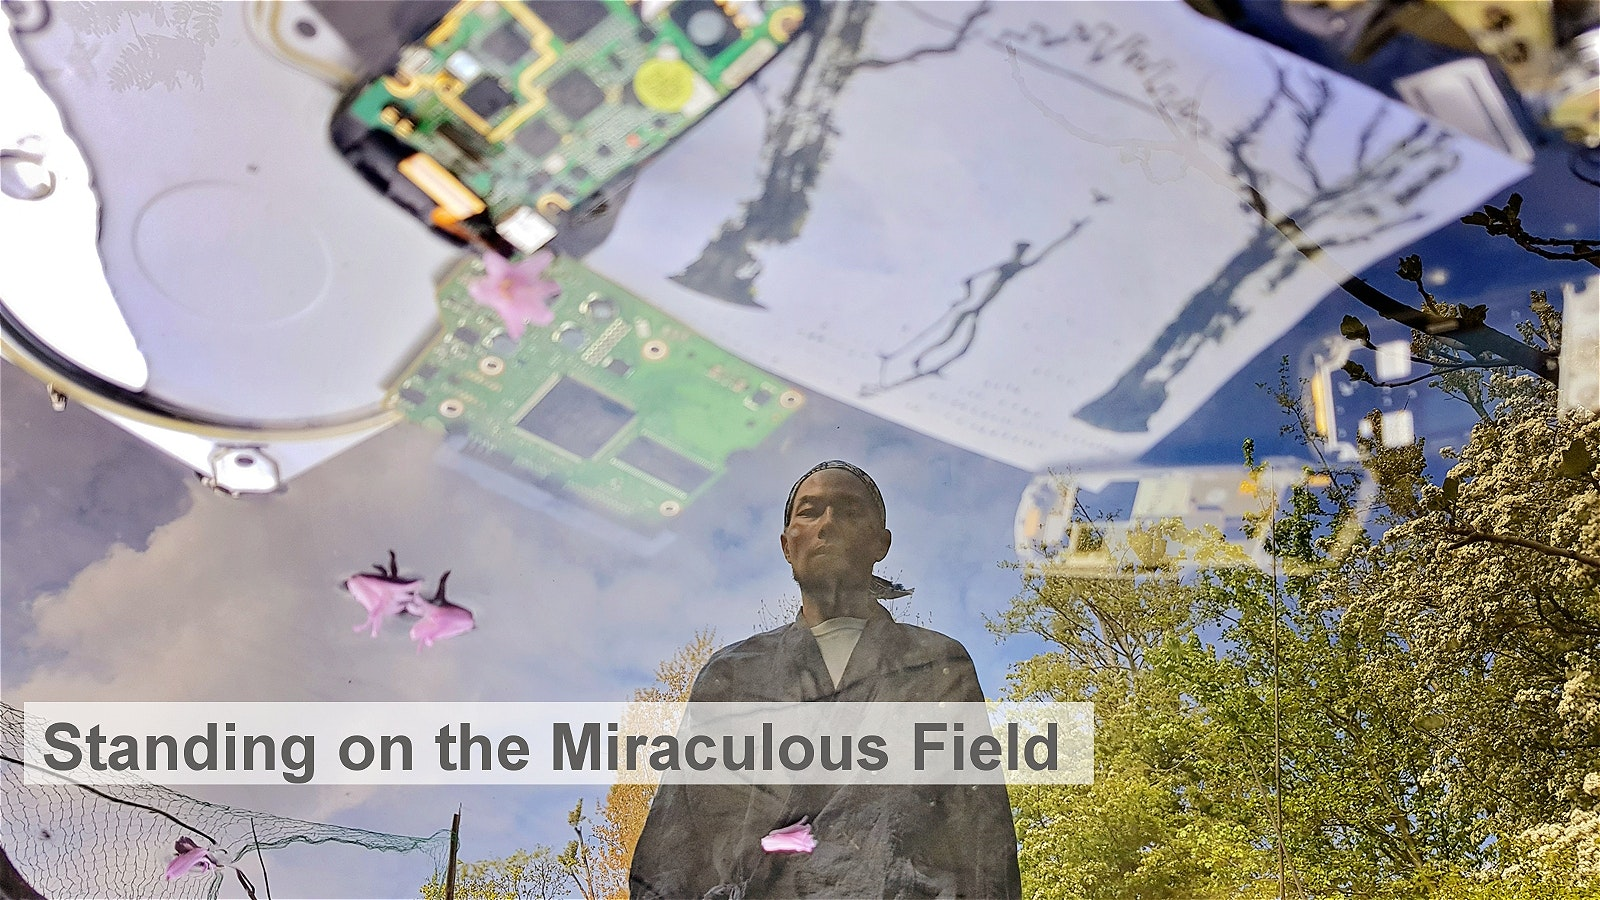 Standing on the Miraculous Field